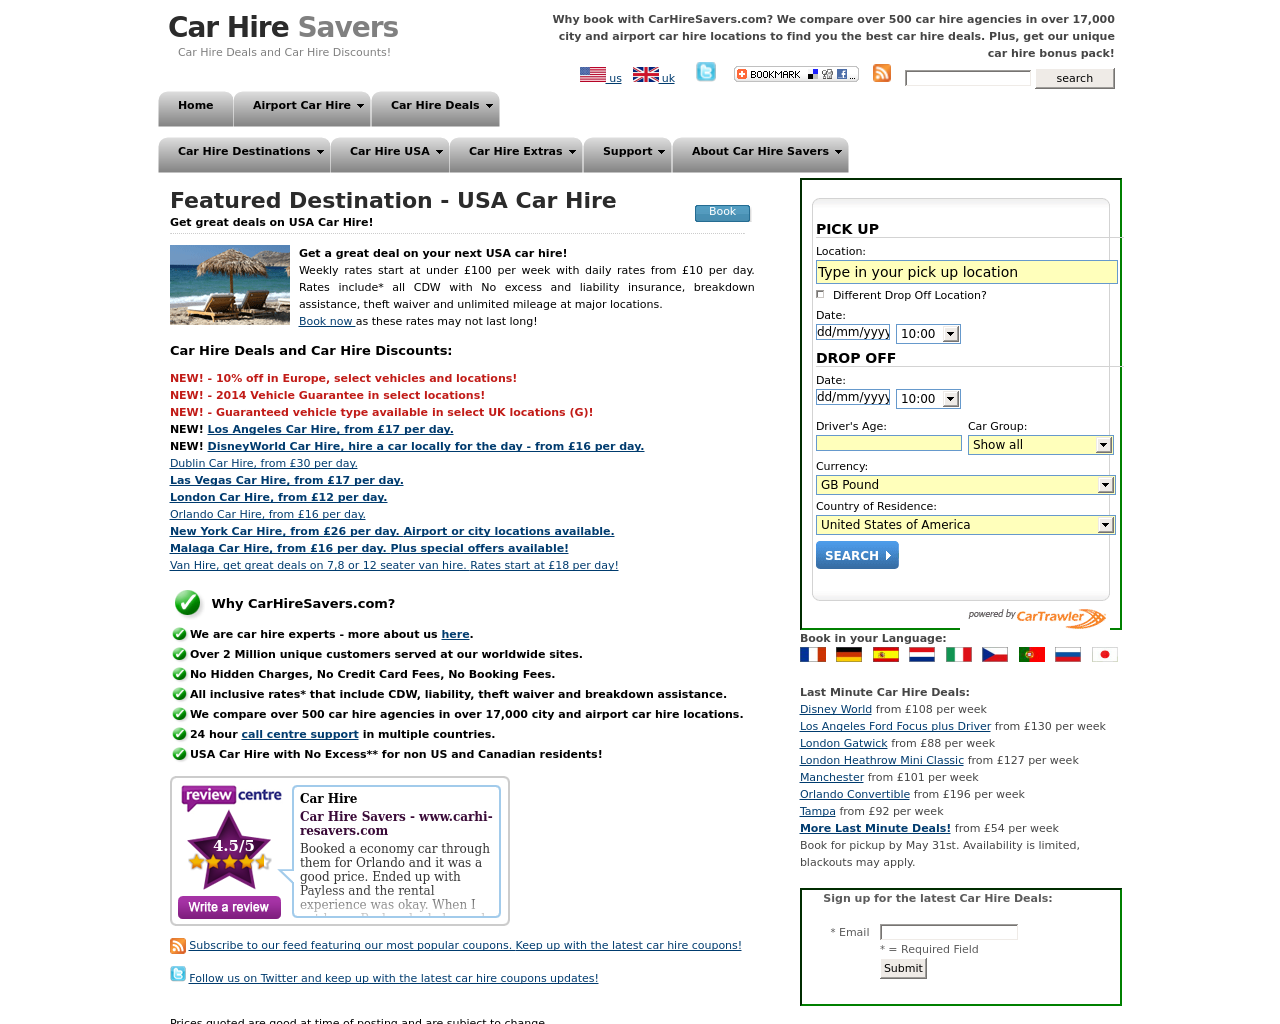 Car-Hire-Savers-Advertising-Reviews-Pricing